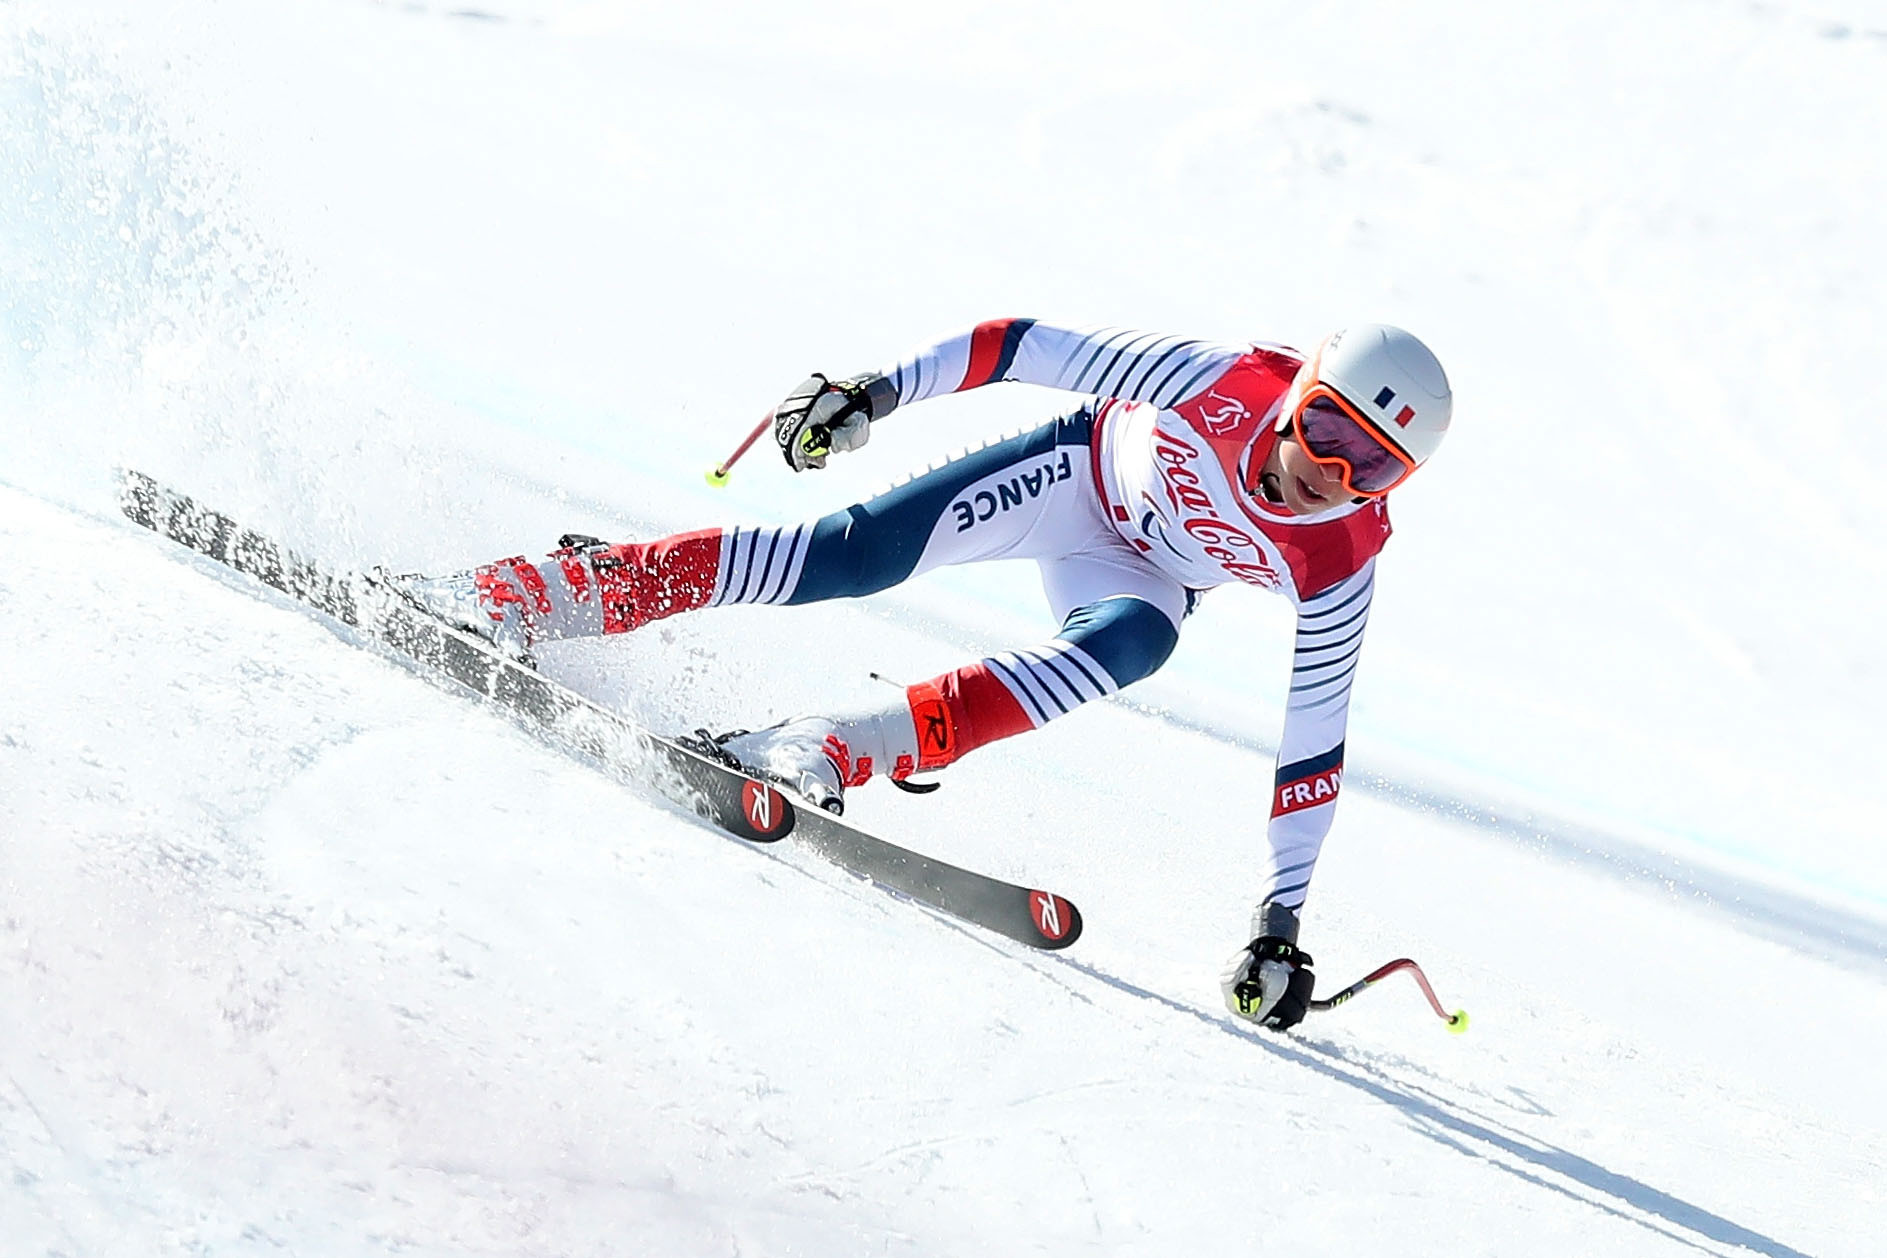 Bauchet bounces back with super-G win at World Para Alpine Skiing World Cup in Saalbach